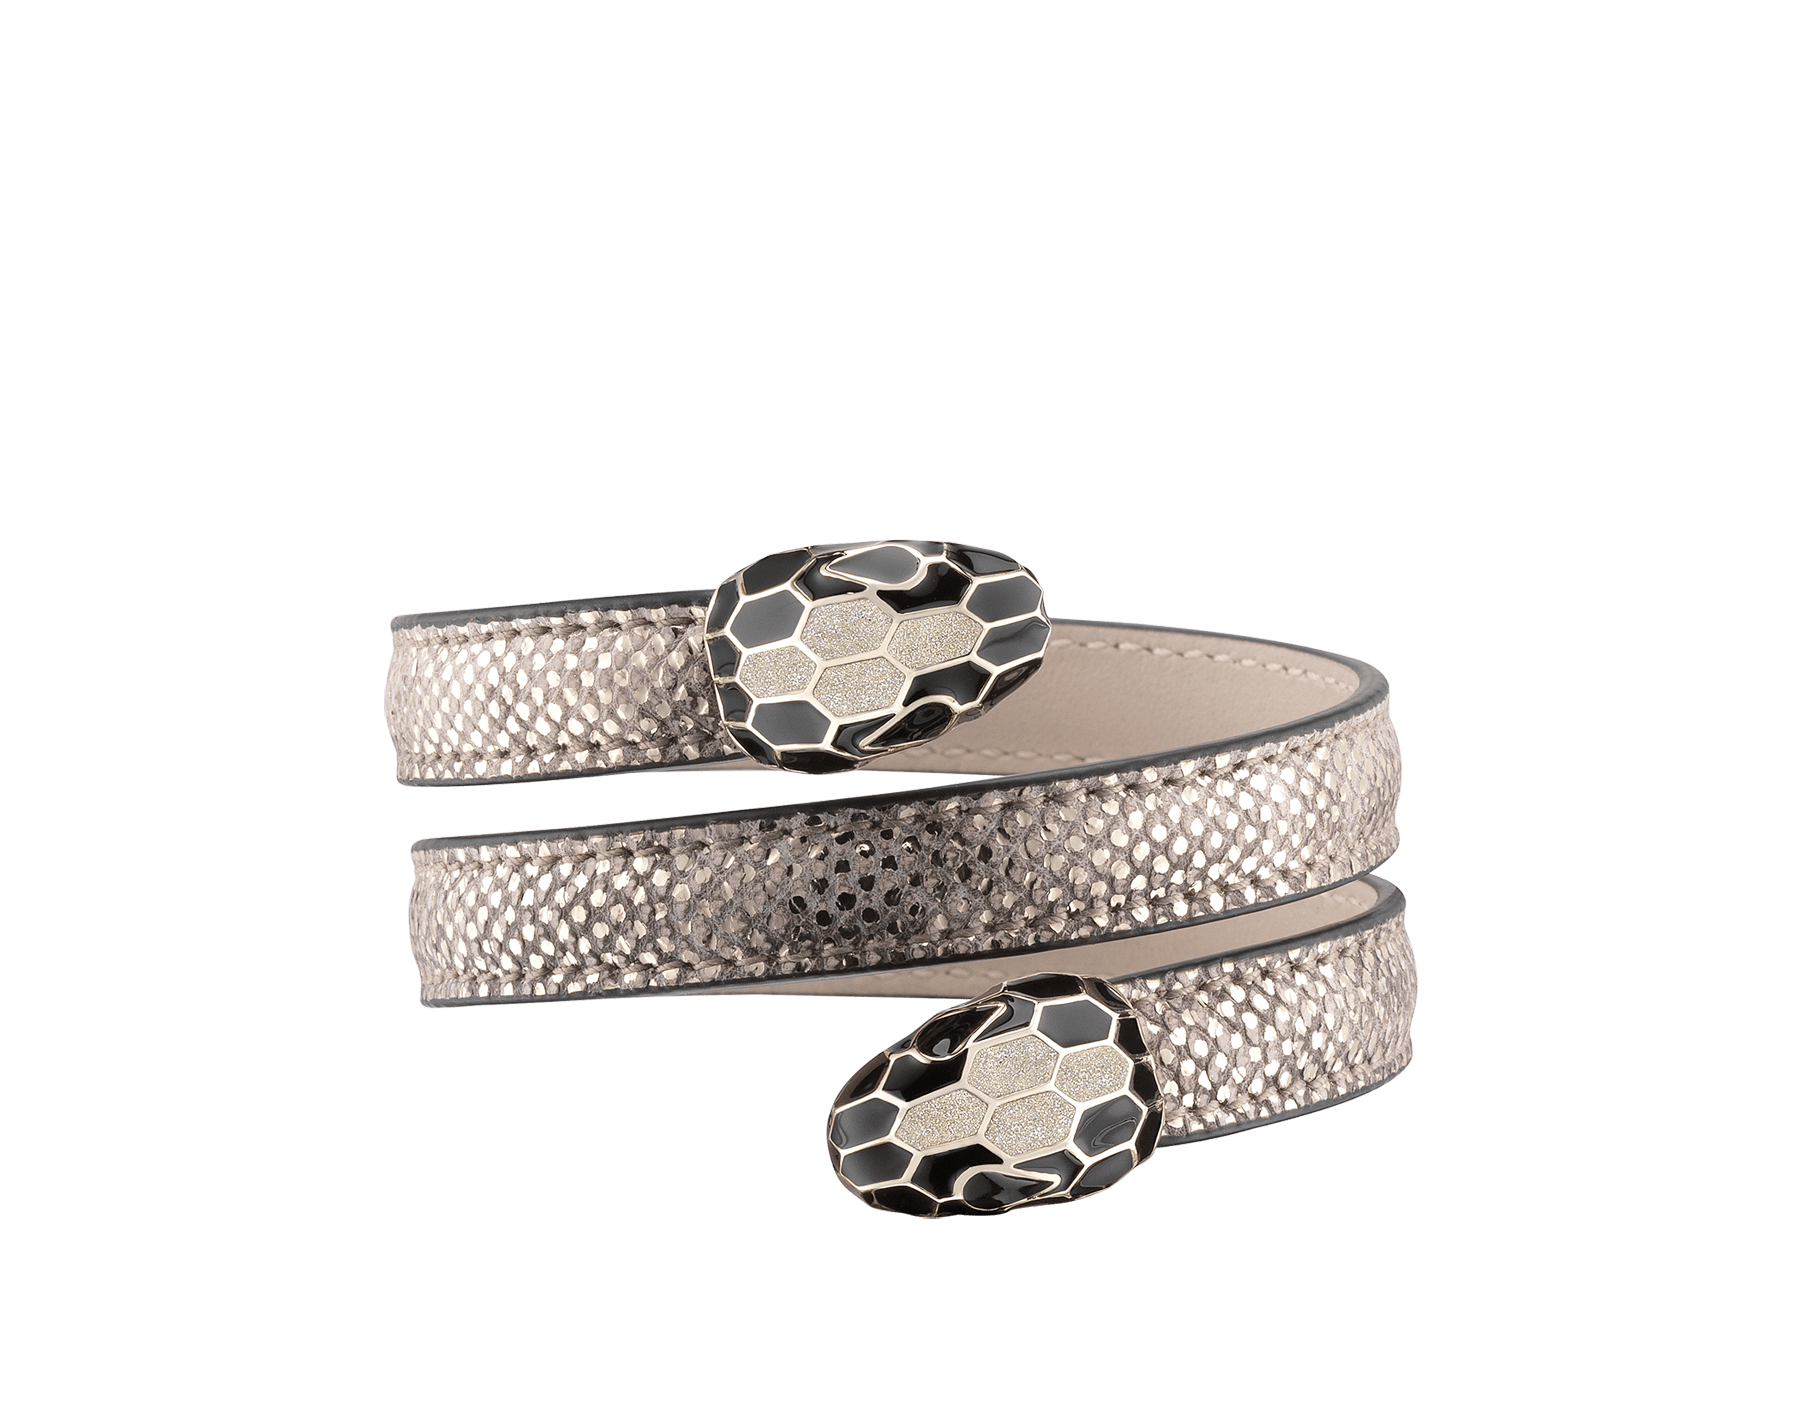 Serpenti Forever multi-coiled rigid Cleopatra bracelet in milky opal metallic karung skin, with brass light gold plated hardware. Iconic double snakehead décor in black and glitter milky opal enamel, with black enamel eyes. Cleopatra-MK-MO image 1